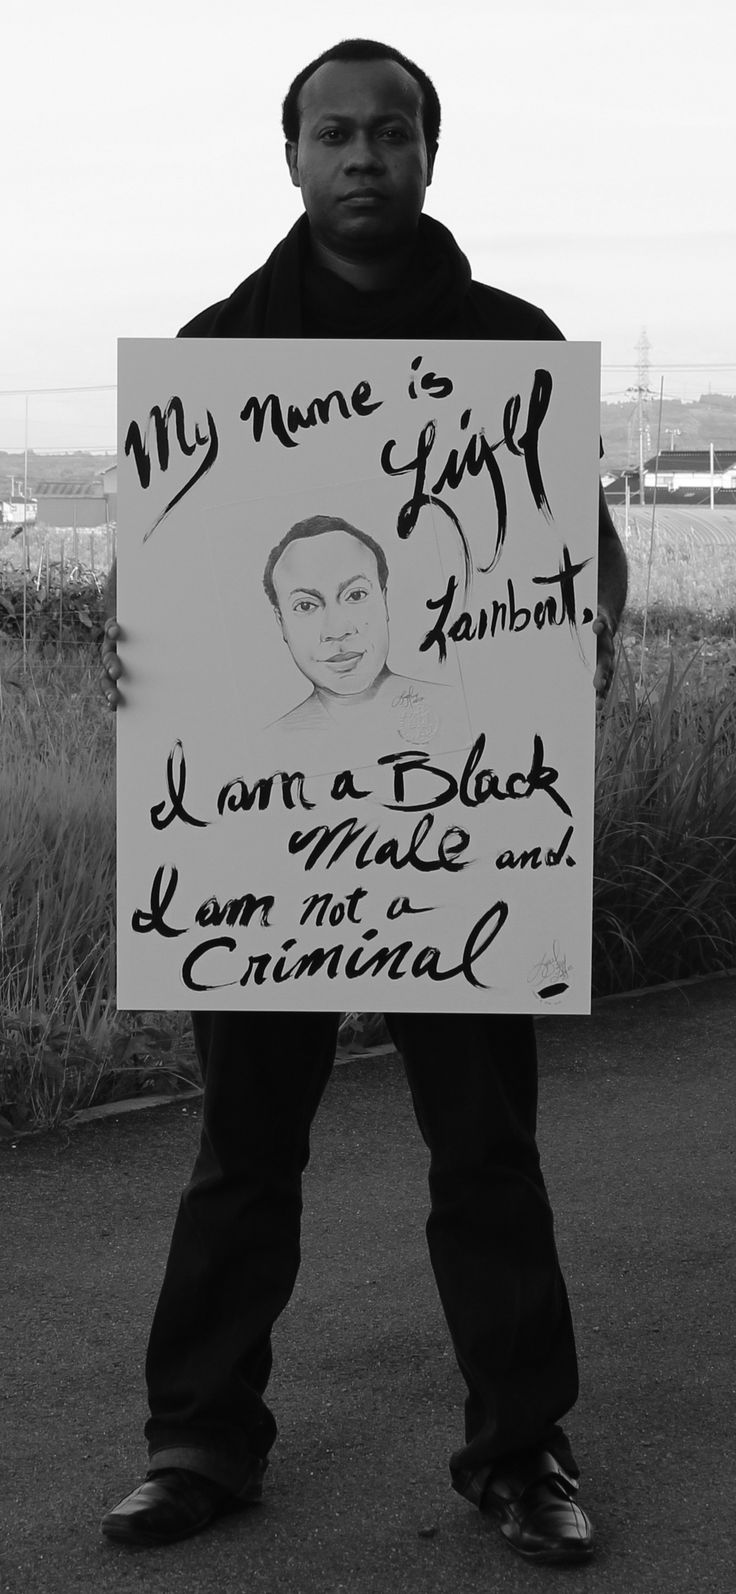 Performance piece created as a protest against fault acquisition, racial profiling, bigotry, stereotypes and racism WORLDWIDE!!.